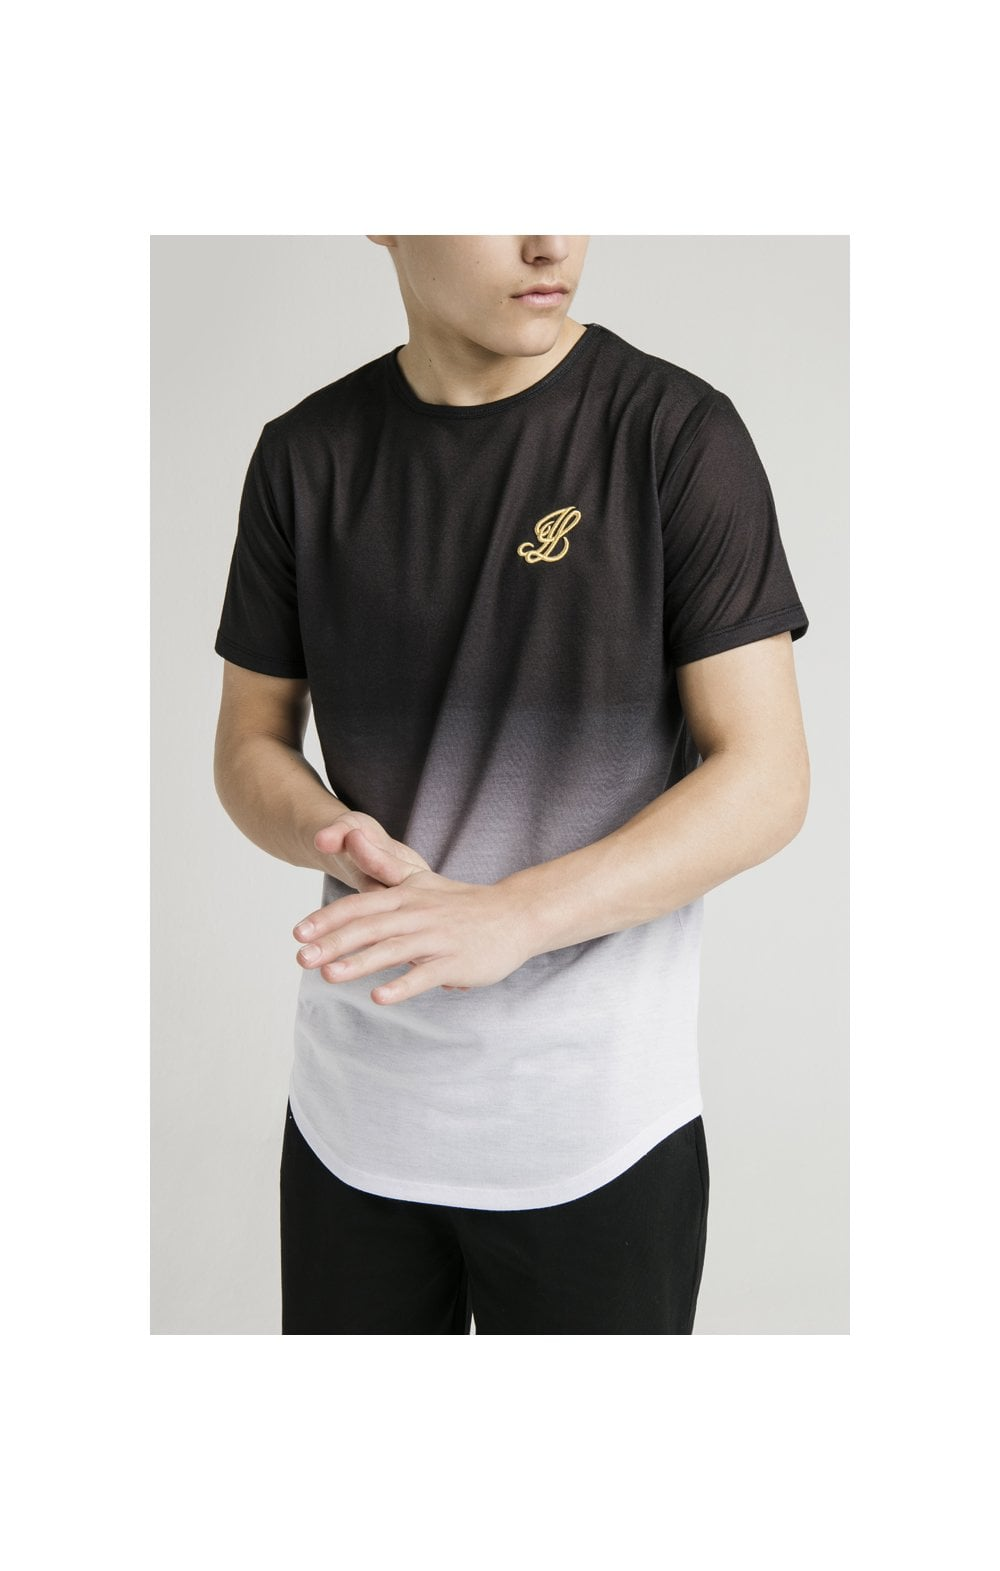 Illusive London S/S Fade Tee - Black & White